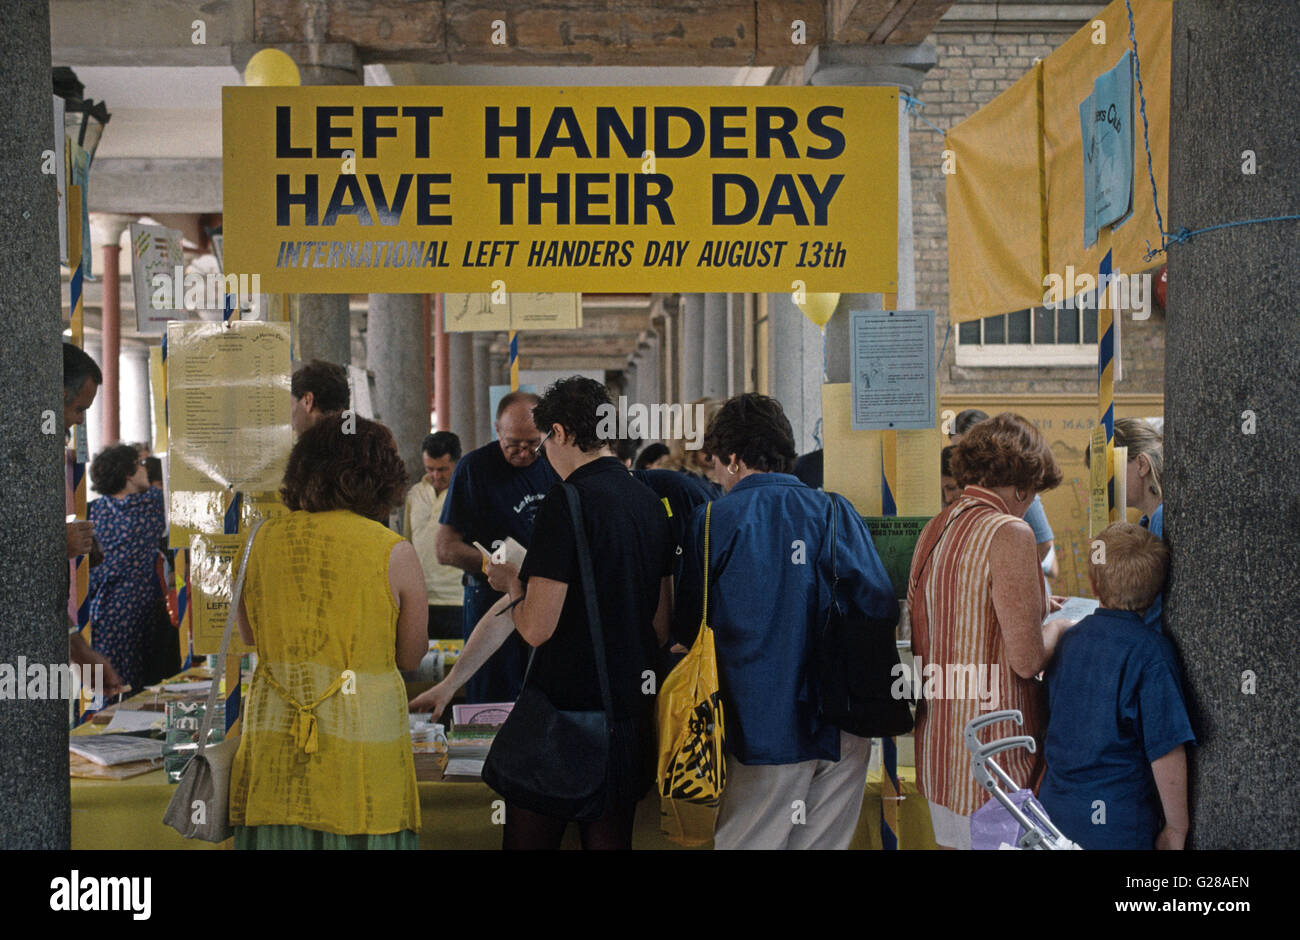 Left handers Day at a demonstration demos - Stock Image